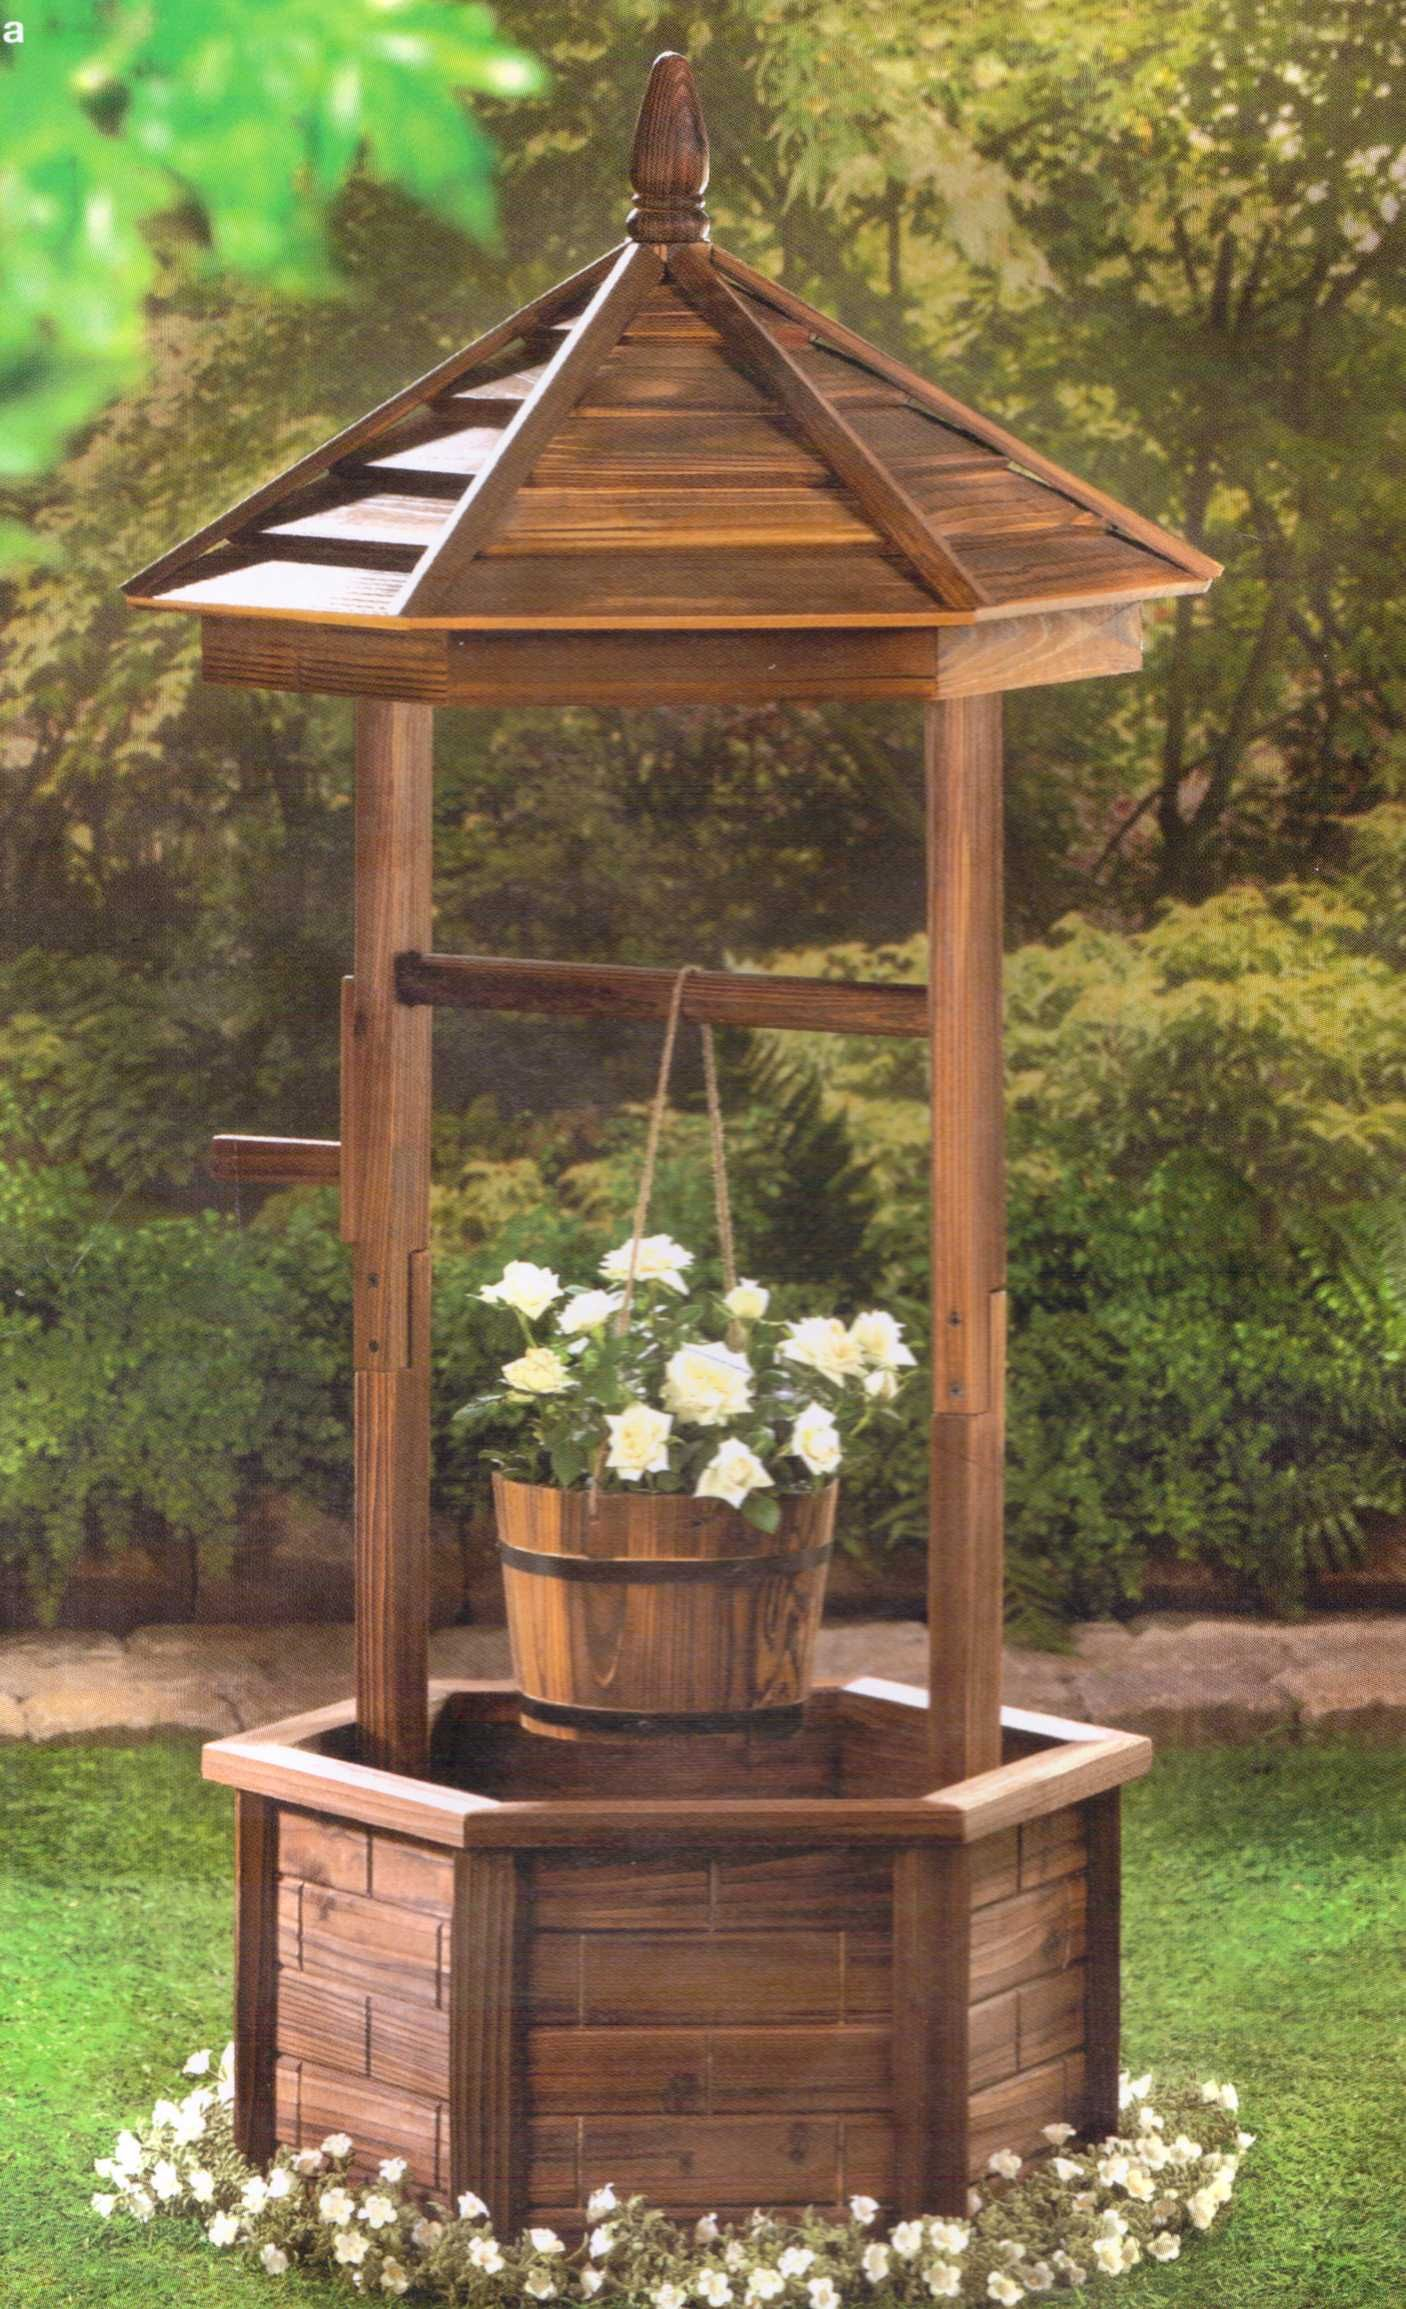 Rustic Wishing Well Planter Cajas De Madera